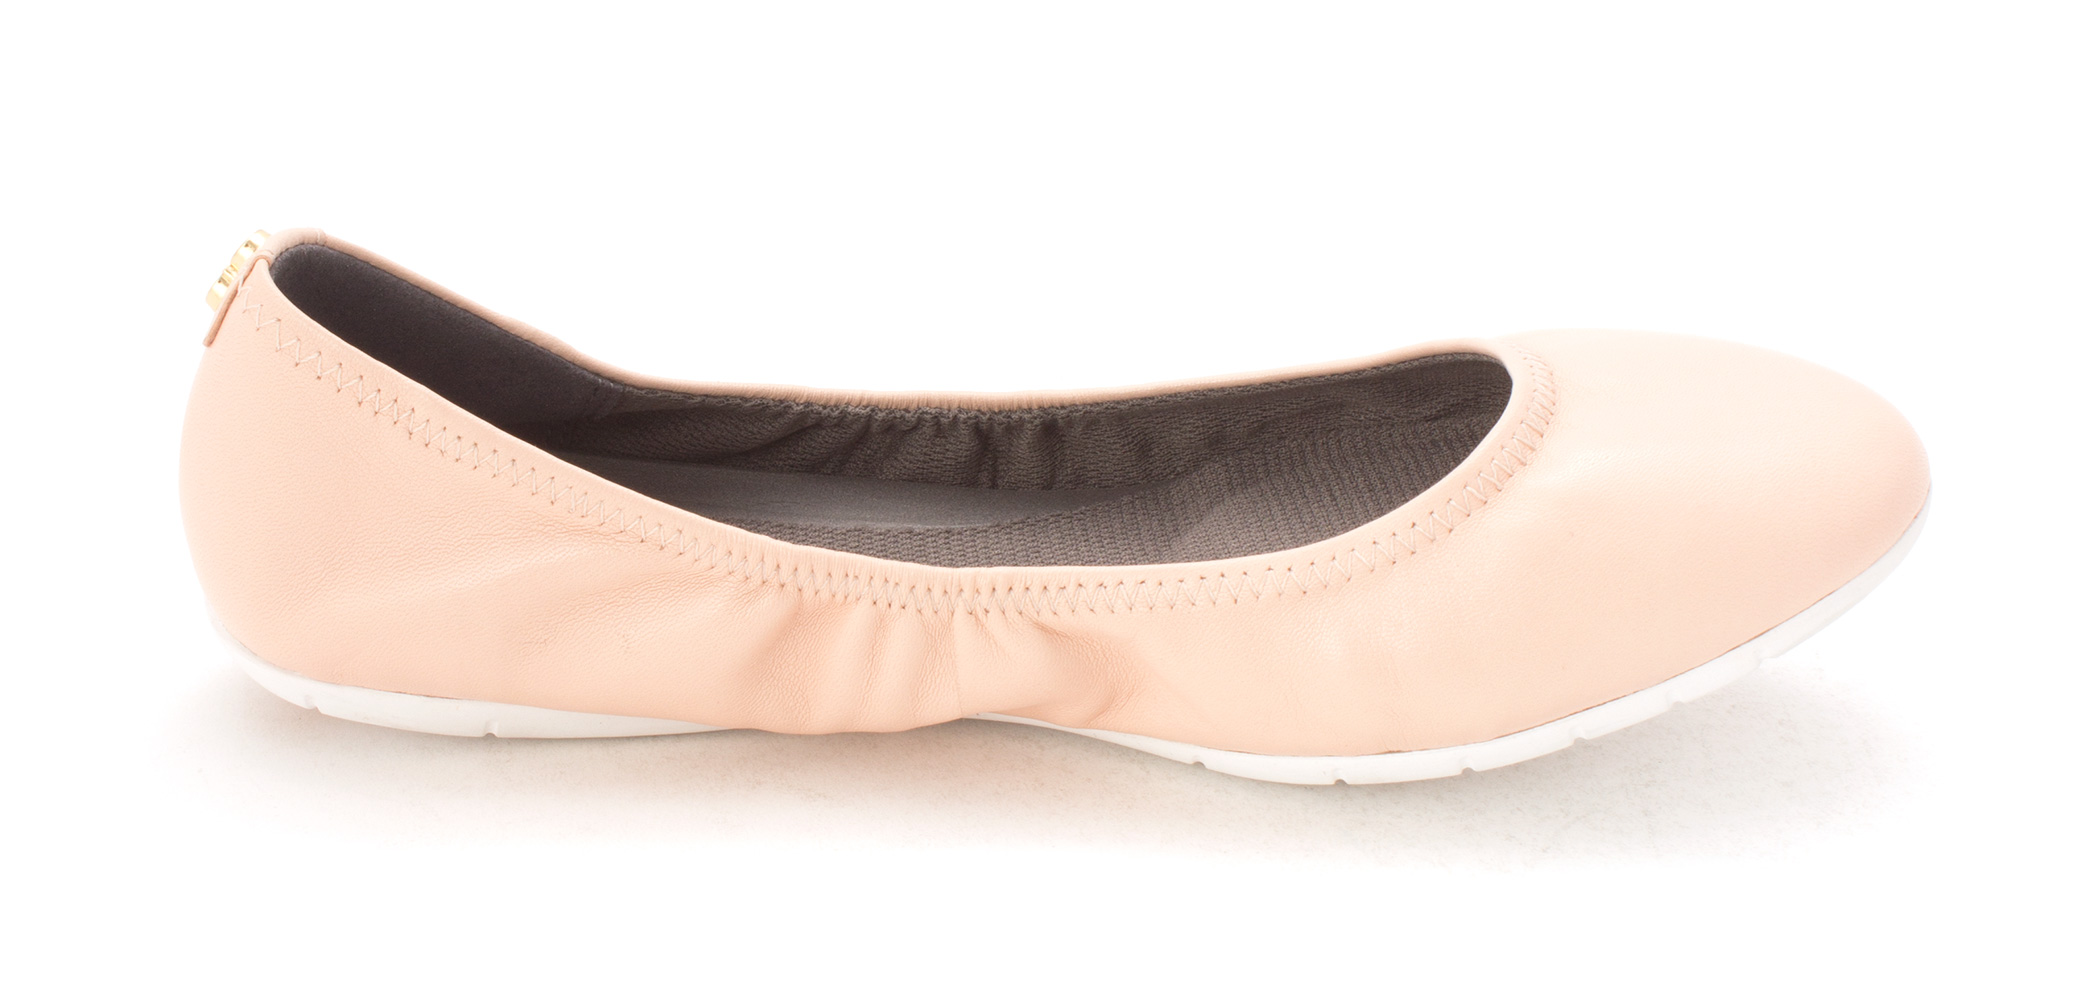 Cole Haan Womens Lynnesam Closed Toe Ballet Flats, Pink, Size 6.0